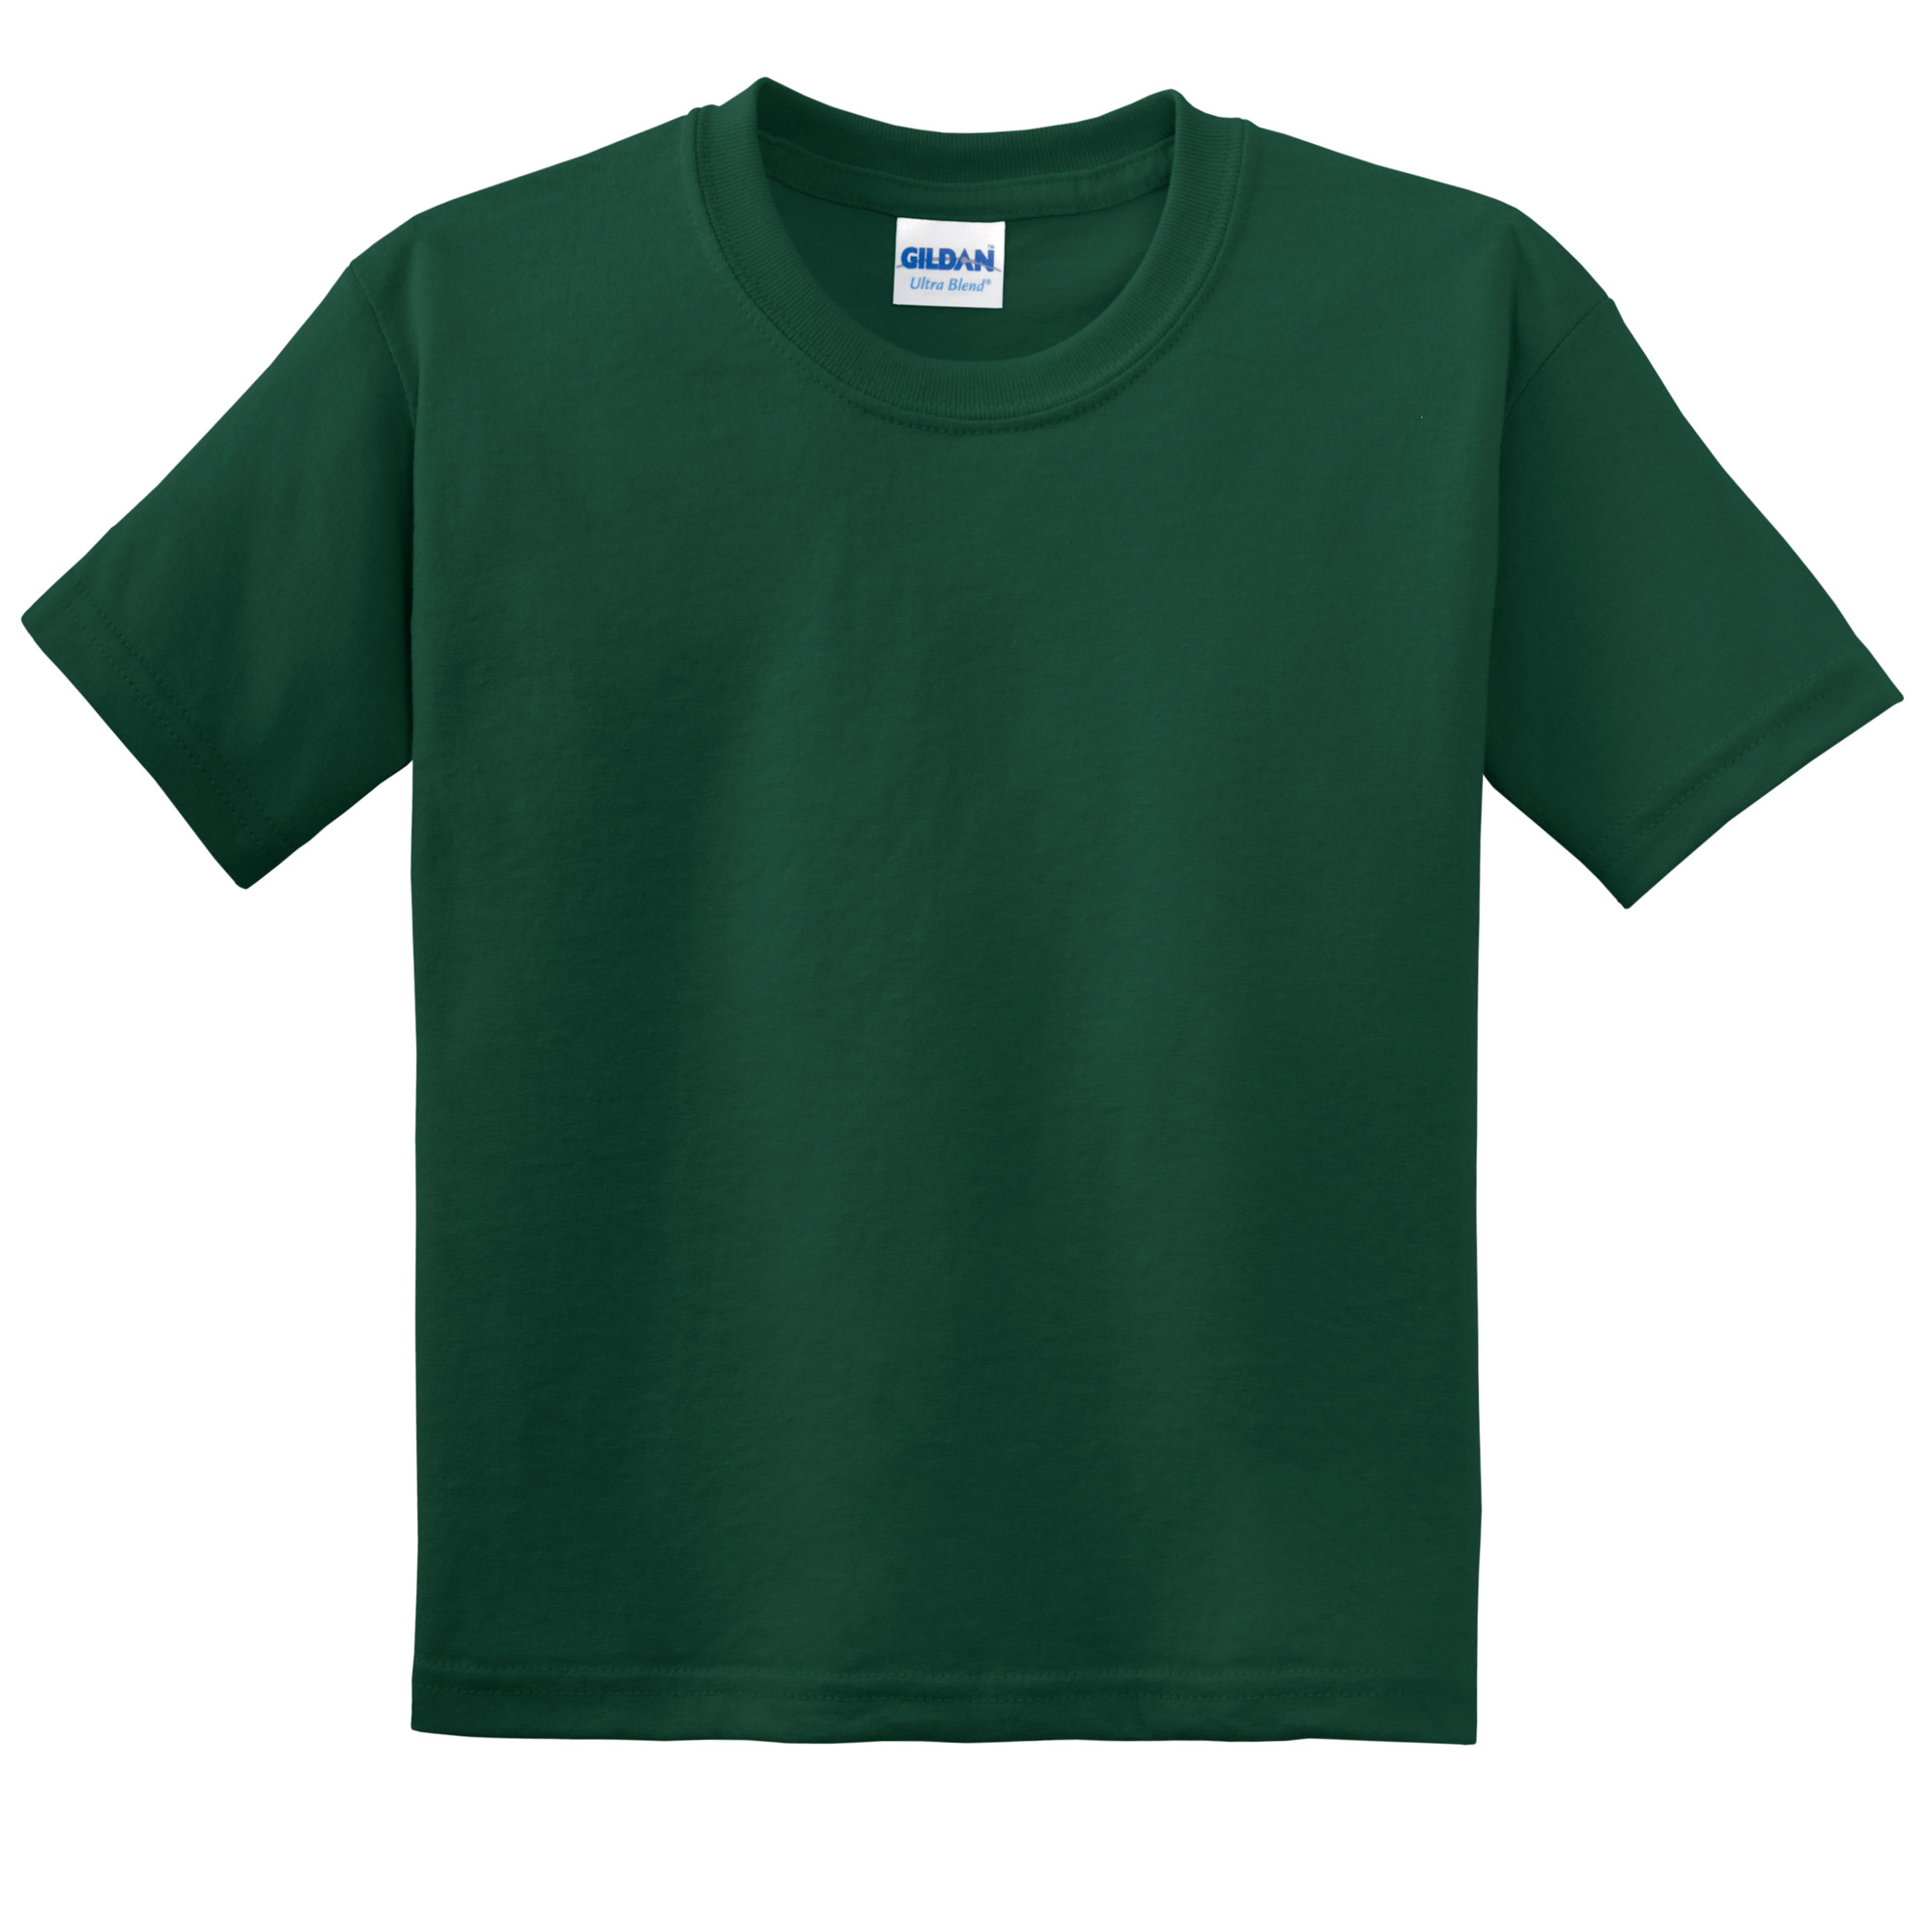 Gildan youth dryblend 50 cotton 50 dryblend poly t for Gildan dryblend 50 cotton 50 poly t shirt 8000